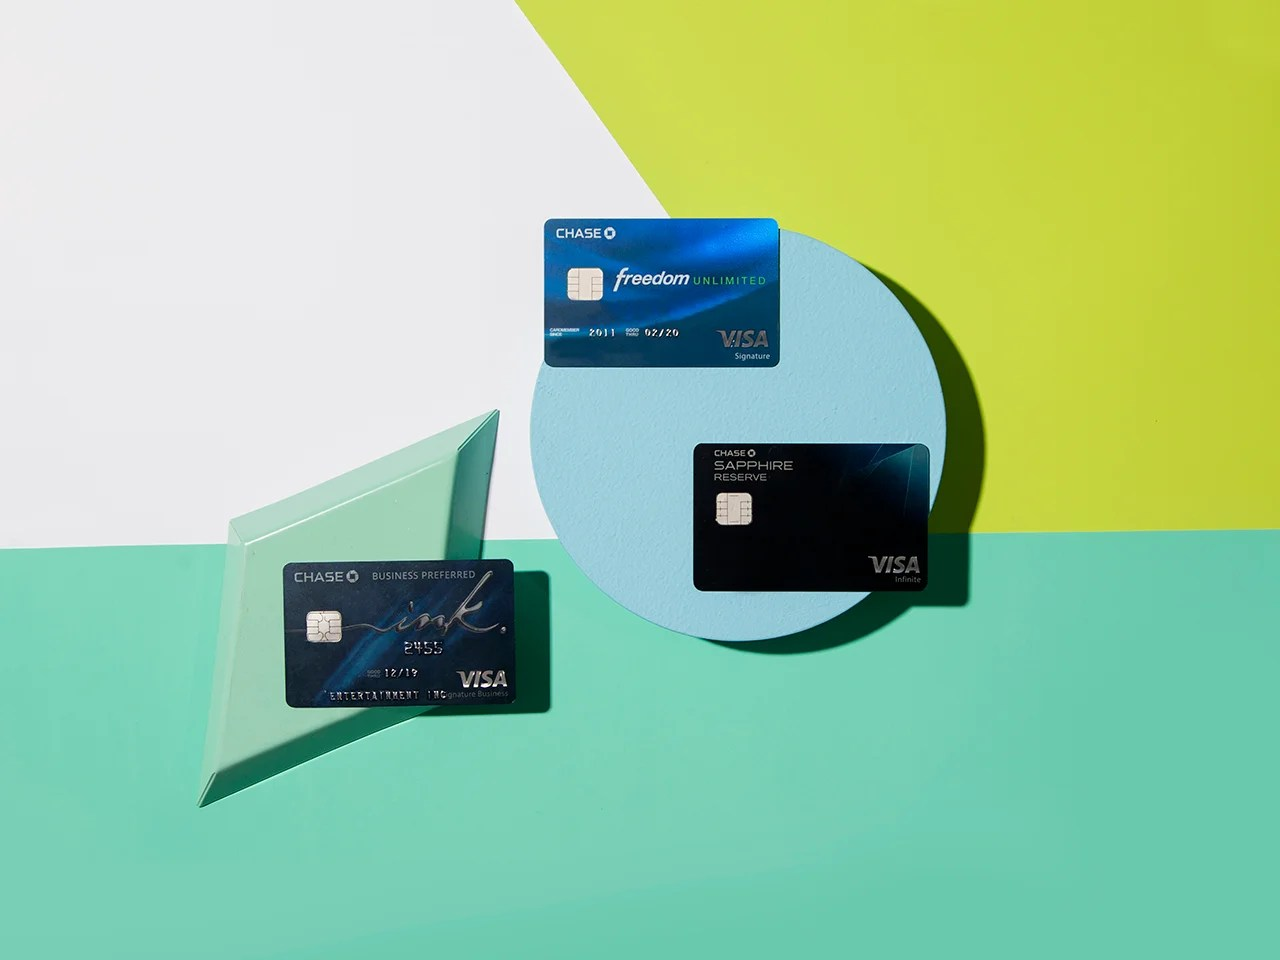 The power of the Chase Trifecta: Sapphire Reserve, Ink Preferred and Freedom Unlimited